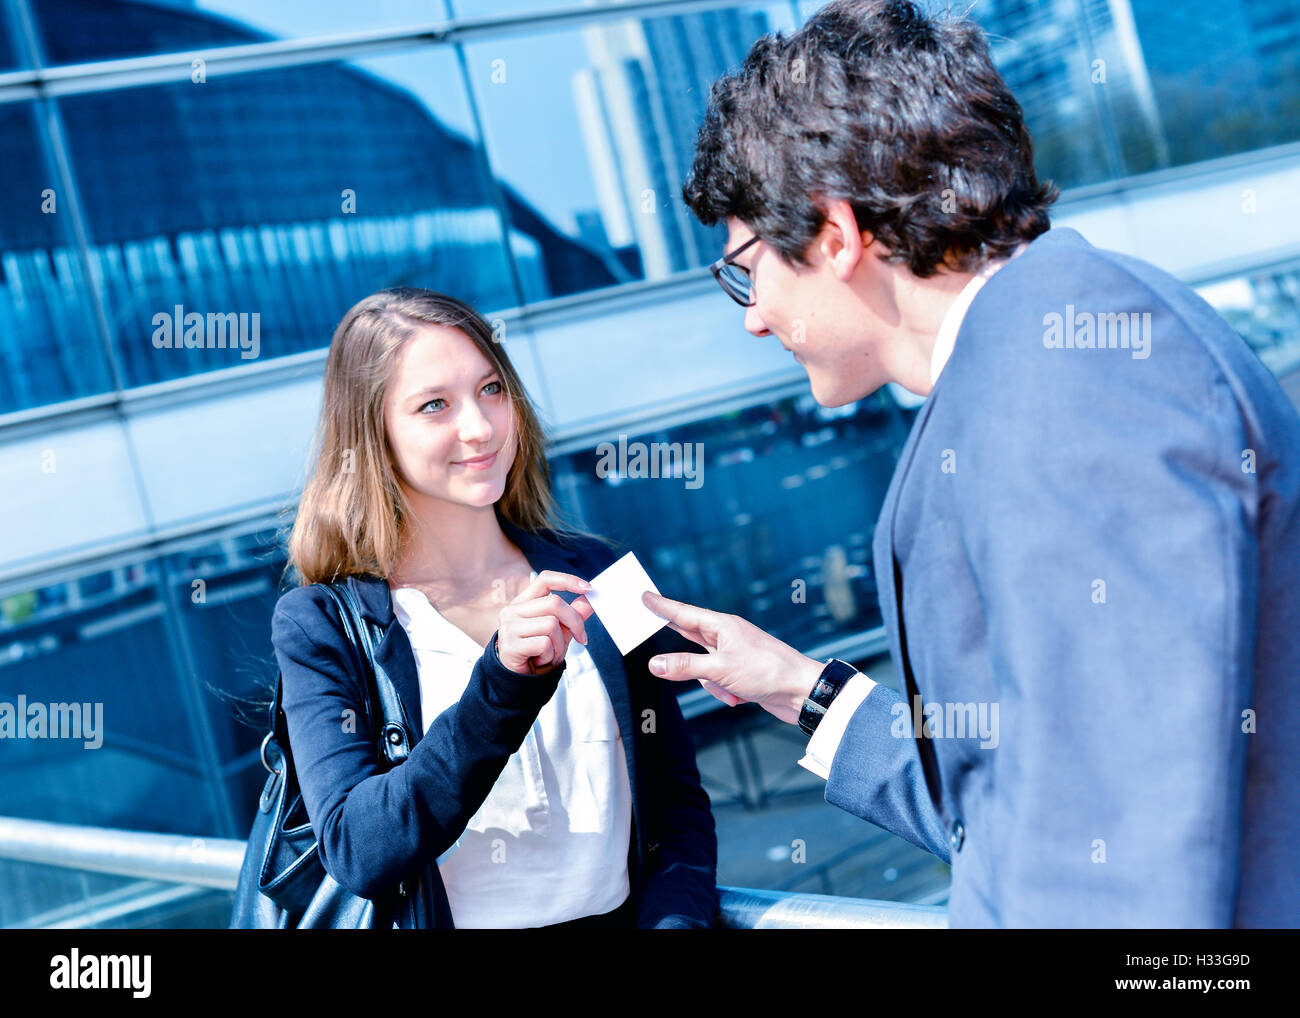 Junior executives dynamics exchange their business cards Stock Photo ...